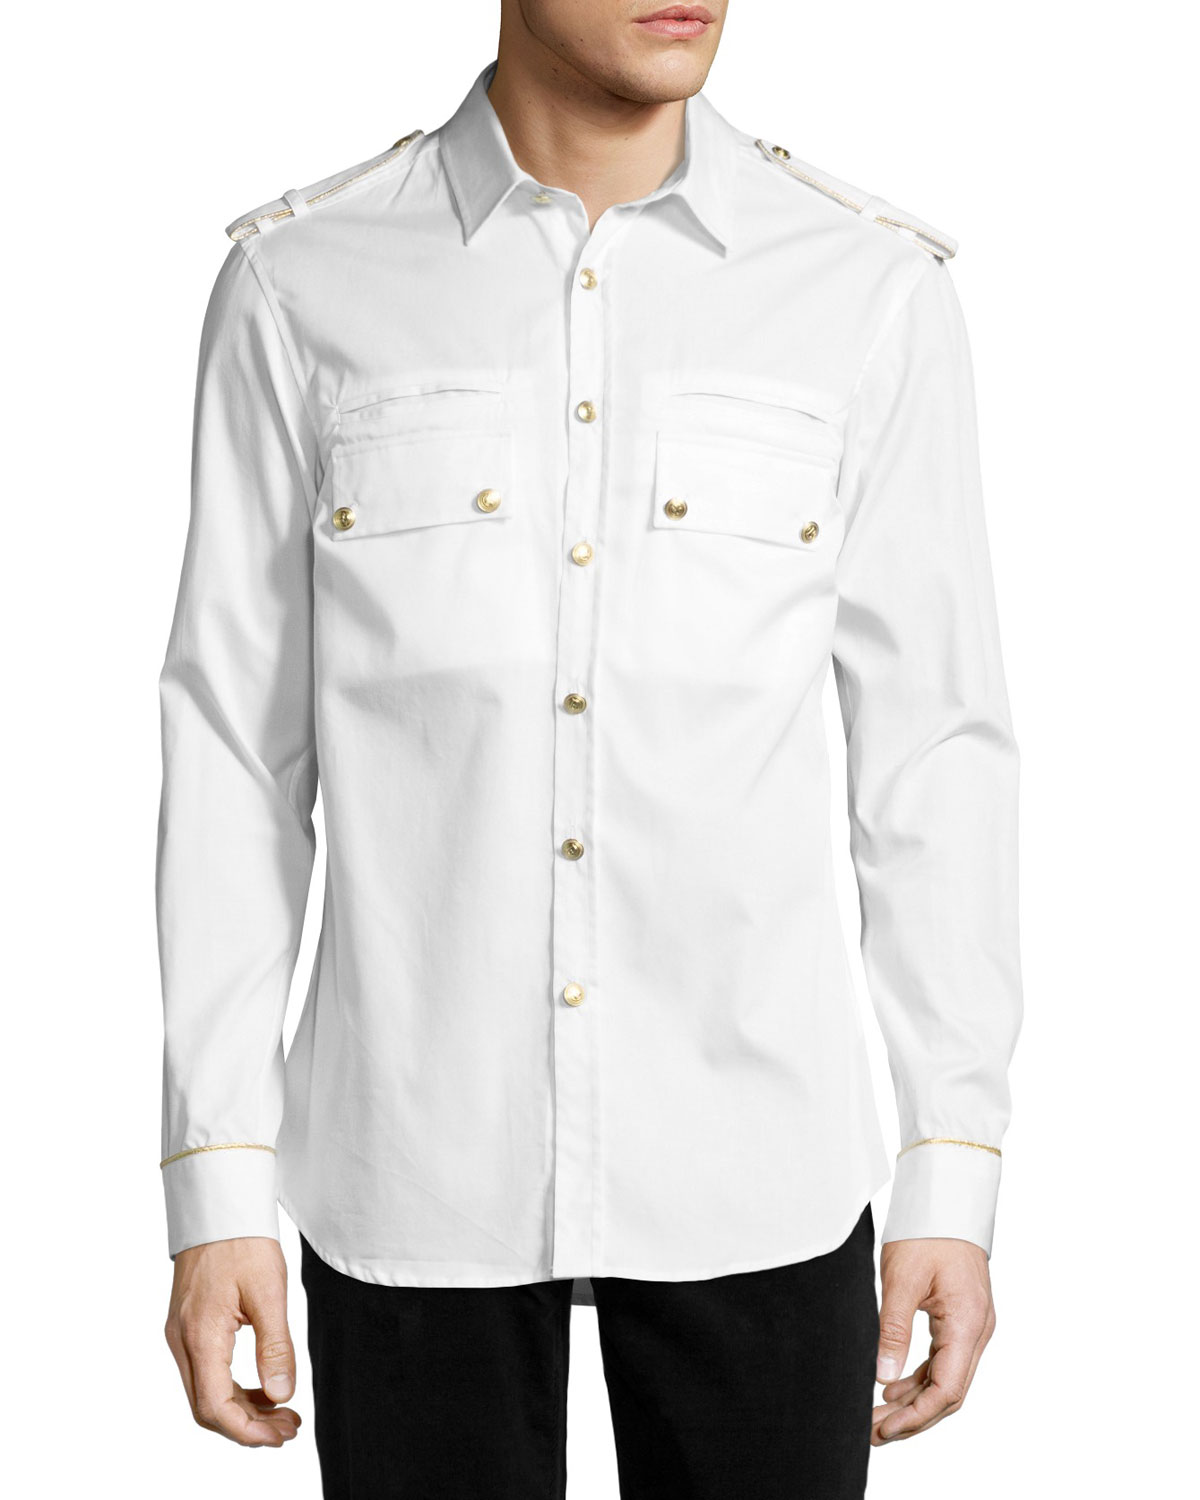 9fed7bac Pierre Balmain Military Shirt with Gold Buttons, Off White   Neiman ...